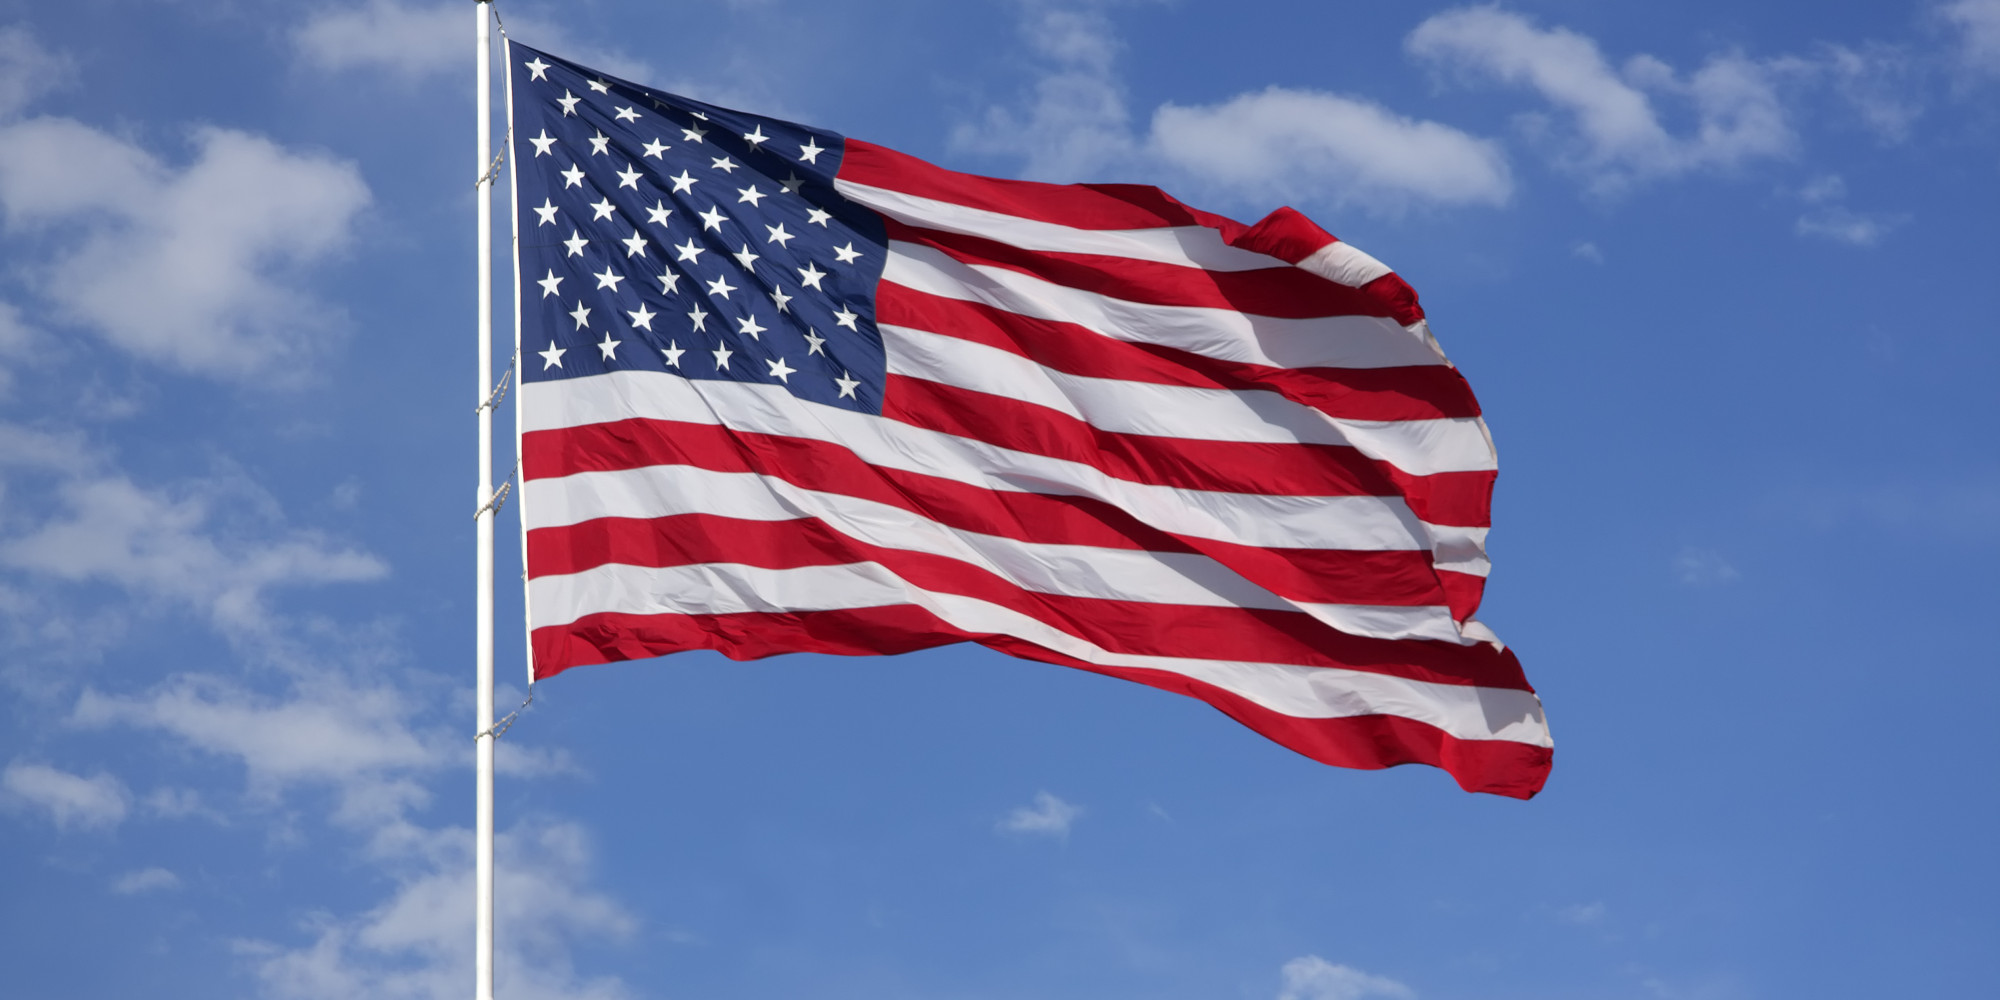 Flag Day in the United States